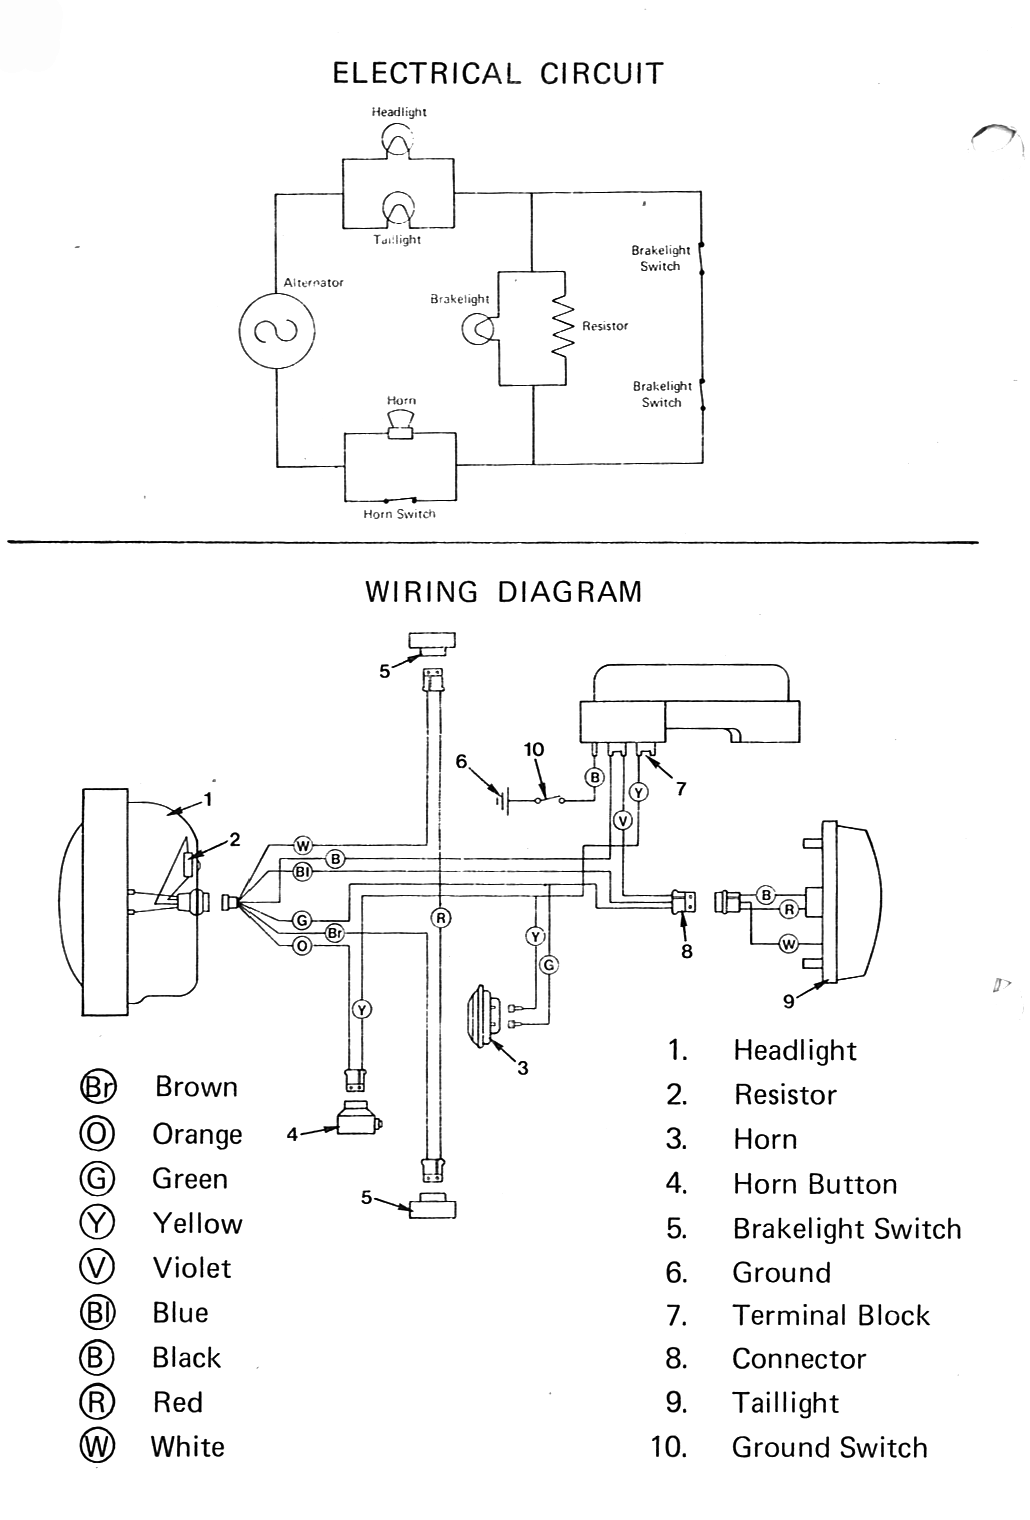 list of wiring diagrams moped wiki rh mopedarmy com Basic Electrical Wiring Diagrams Home Electrical Wiring Diagrams